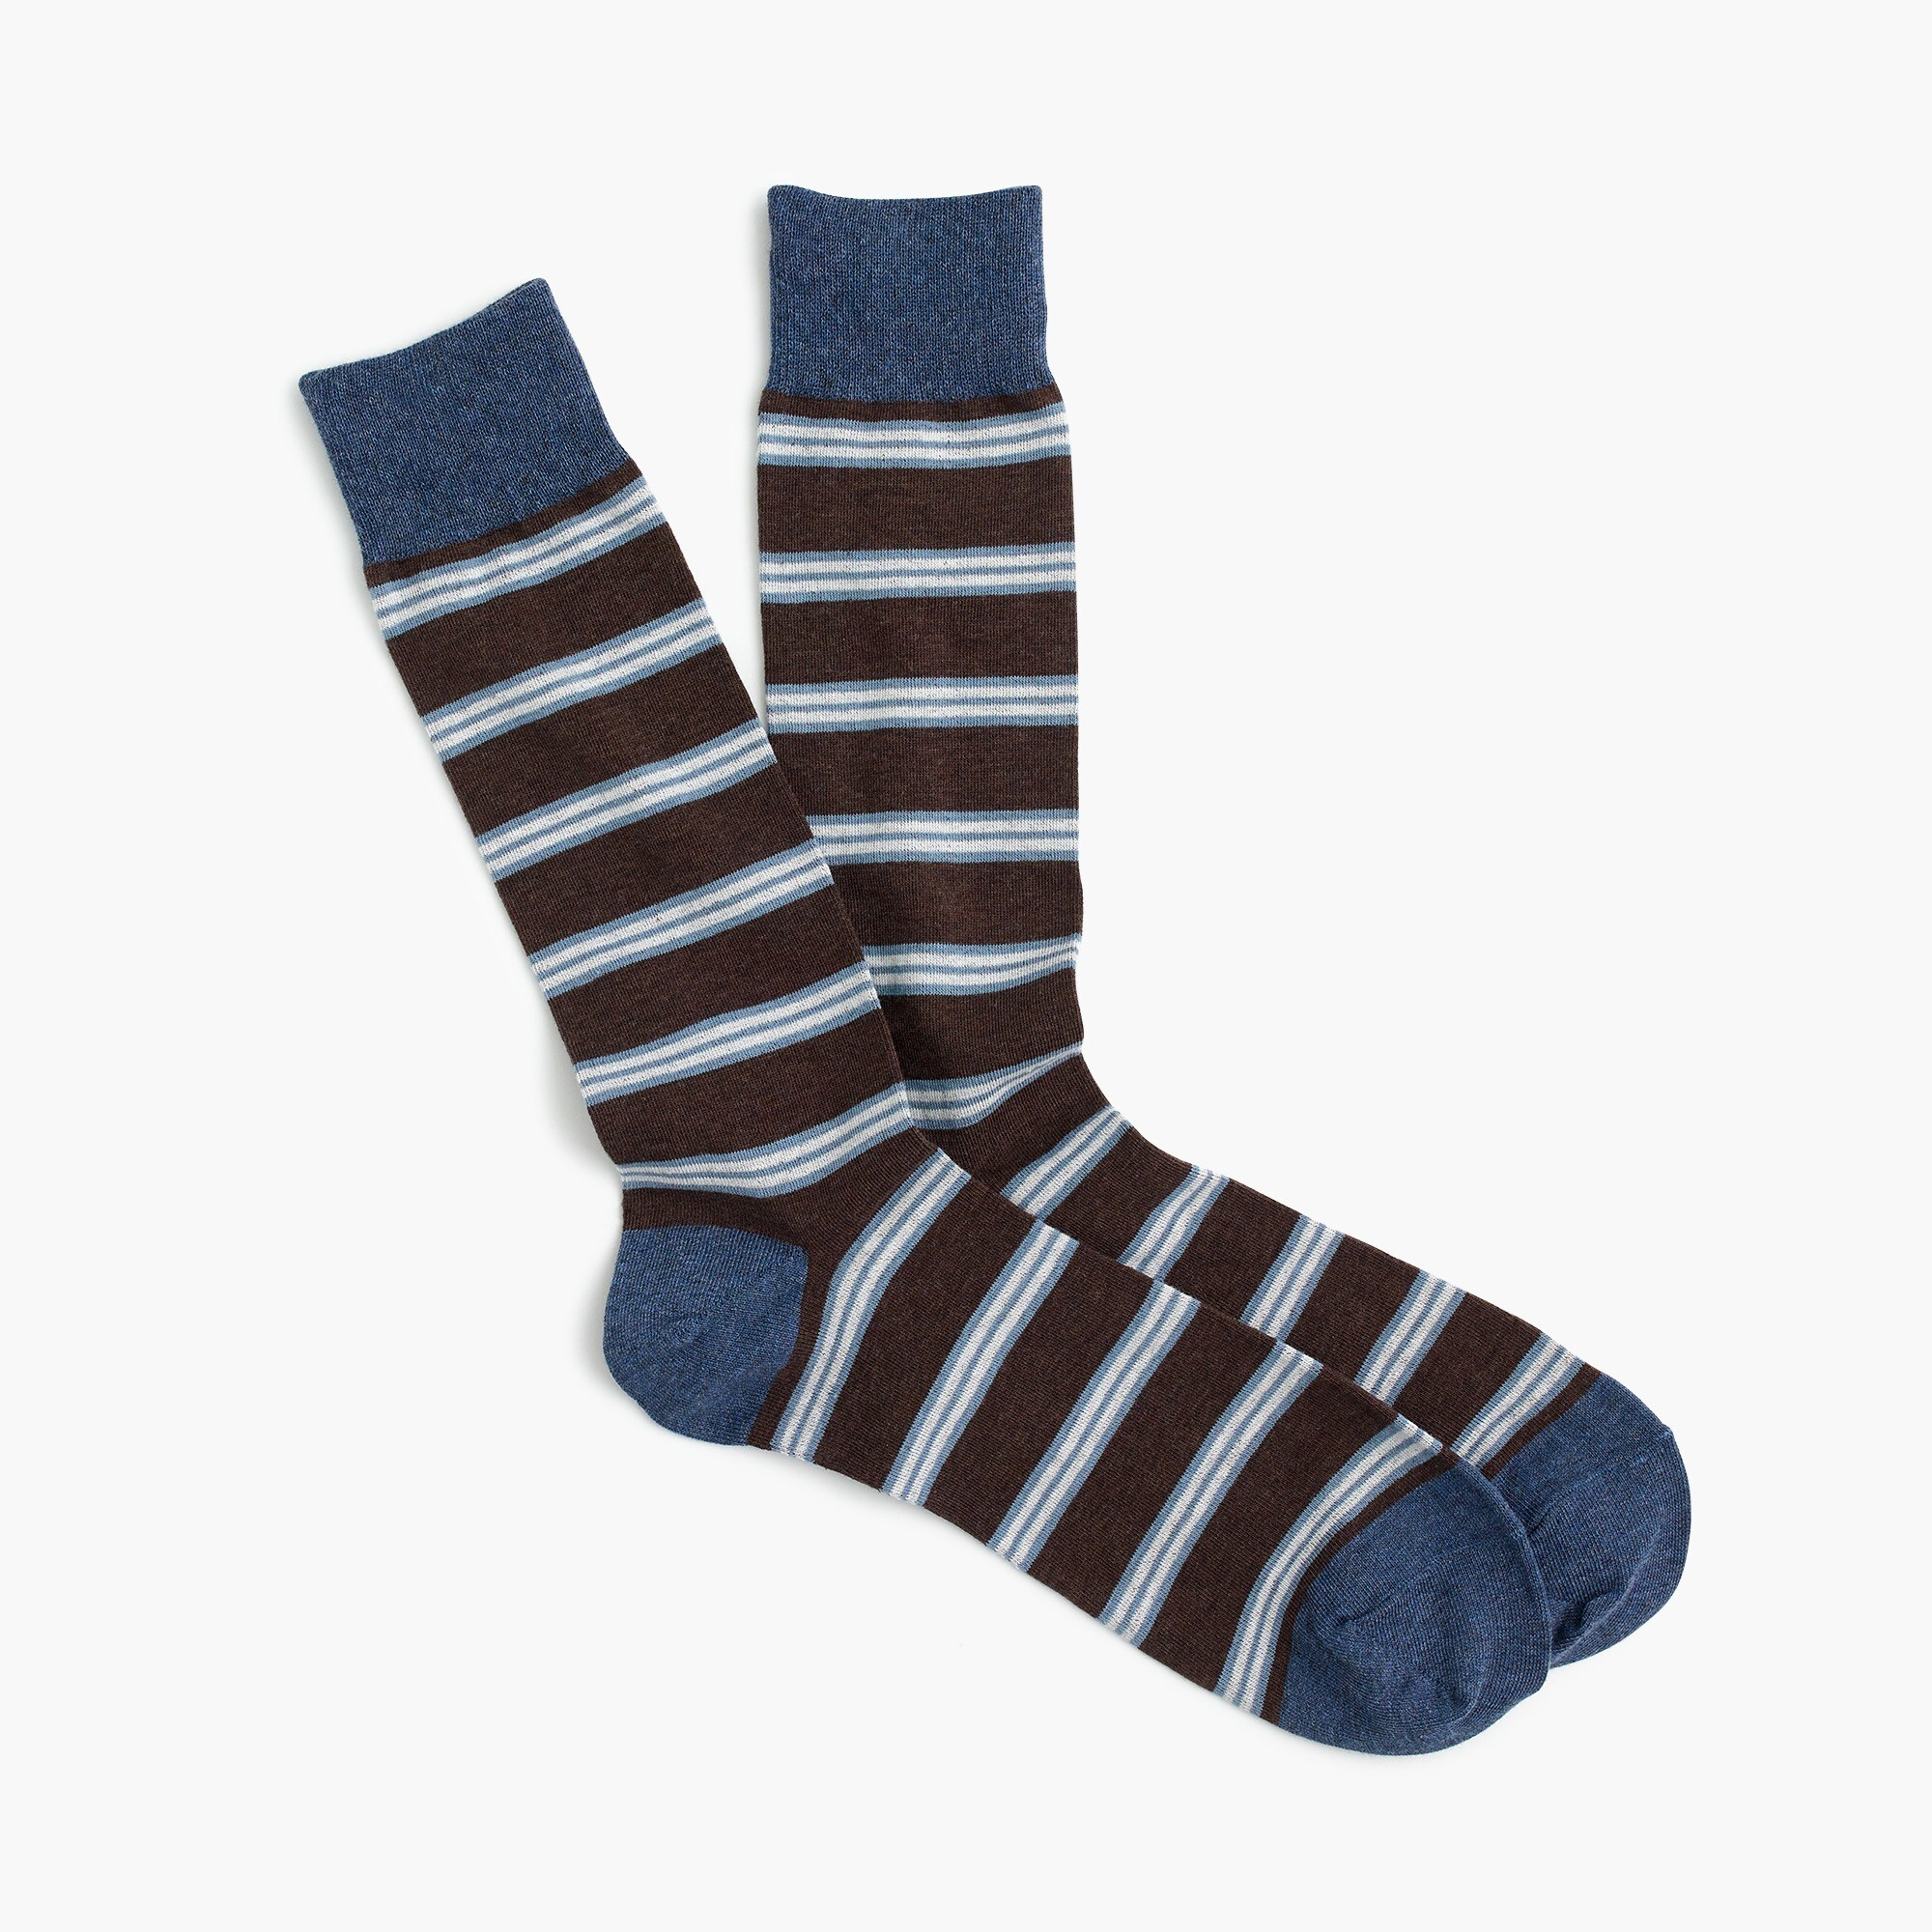 mens Brown striped socks